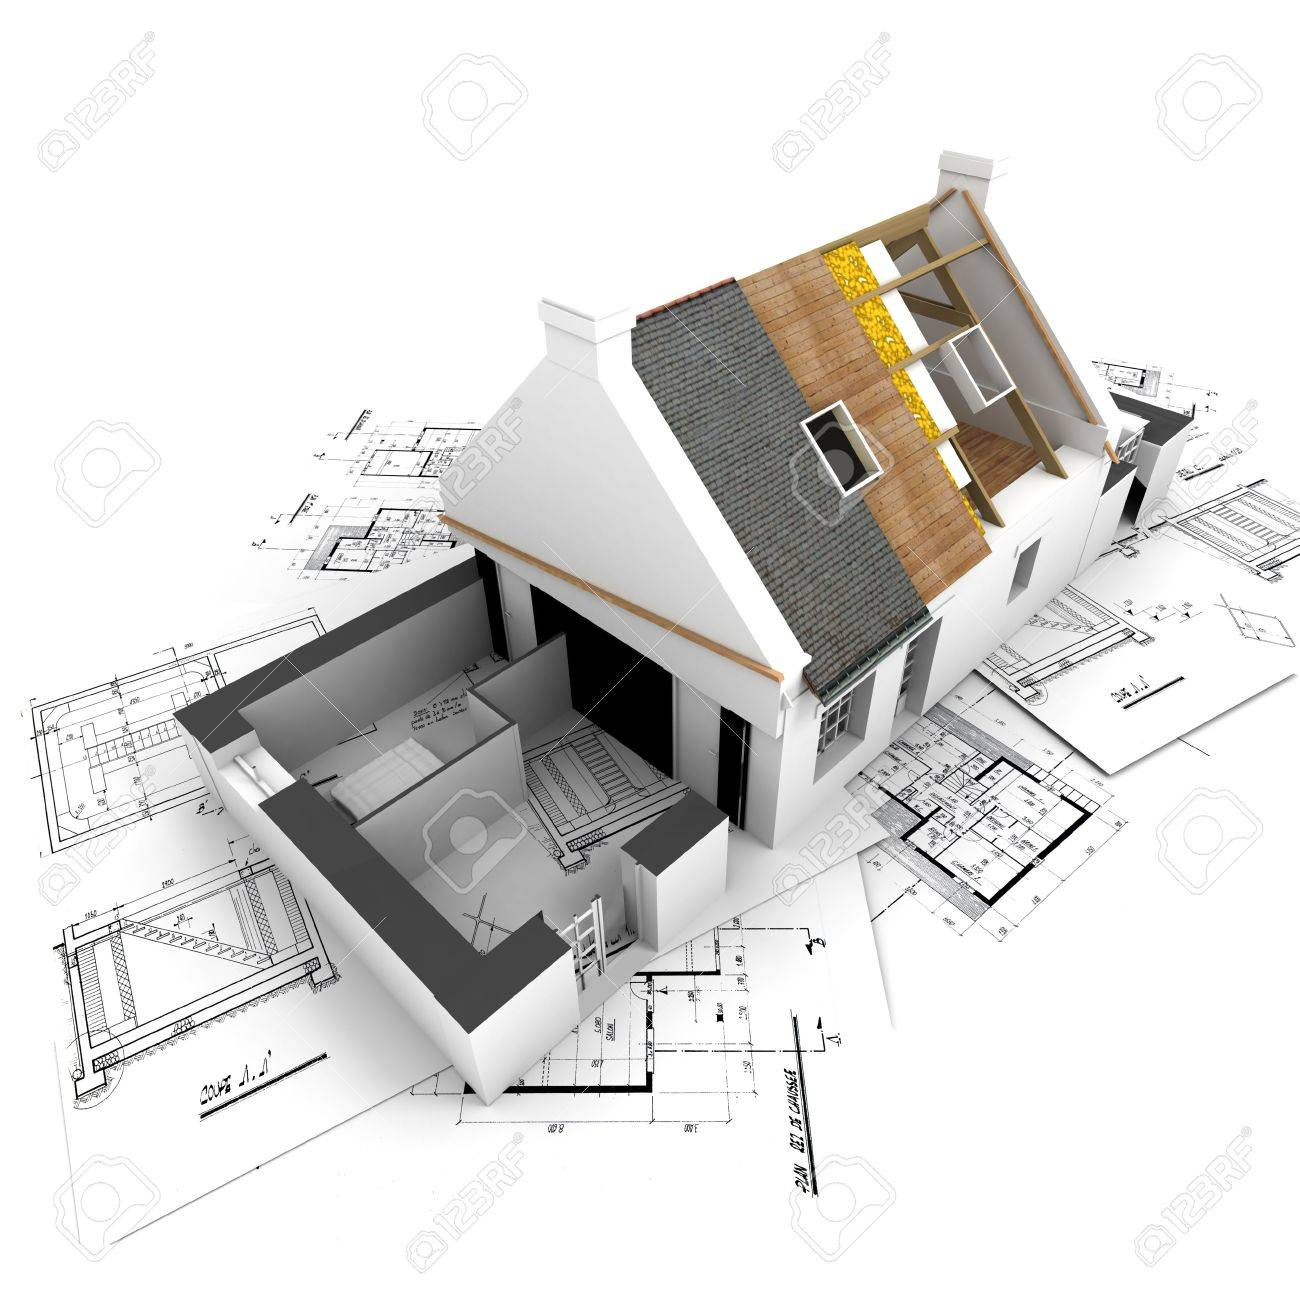 House with exposed roof layers on top of architect blueprints. Stock Photo - 2460507